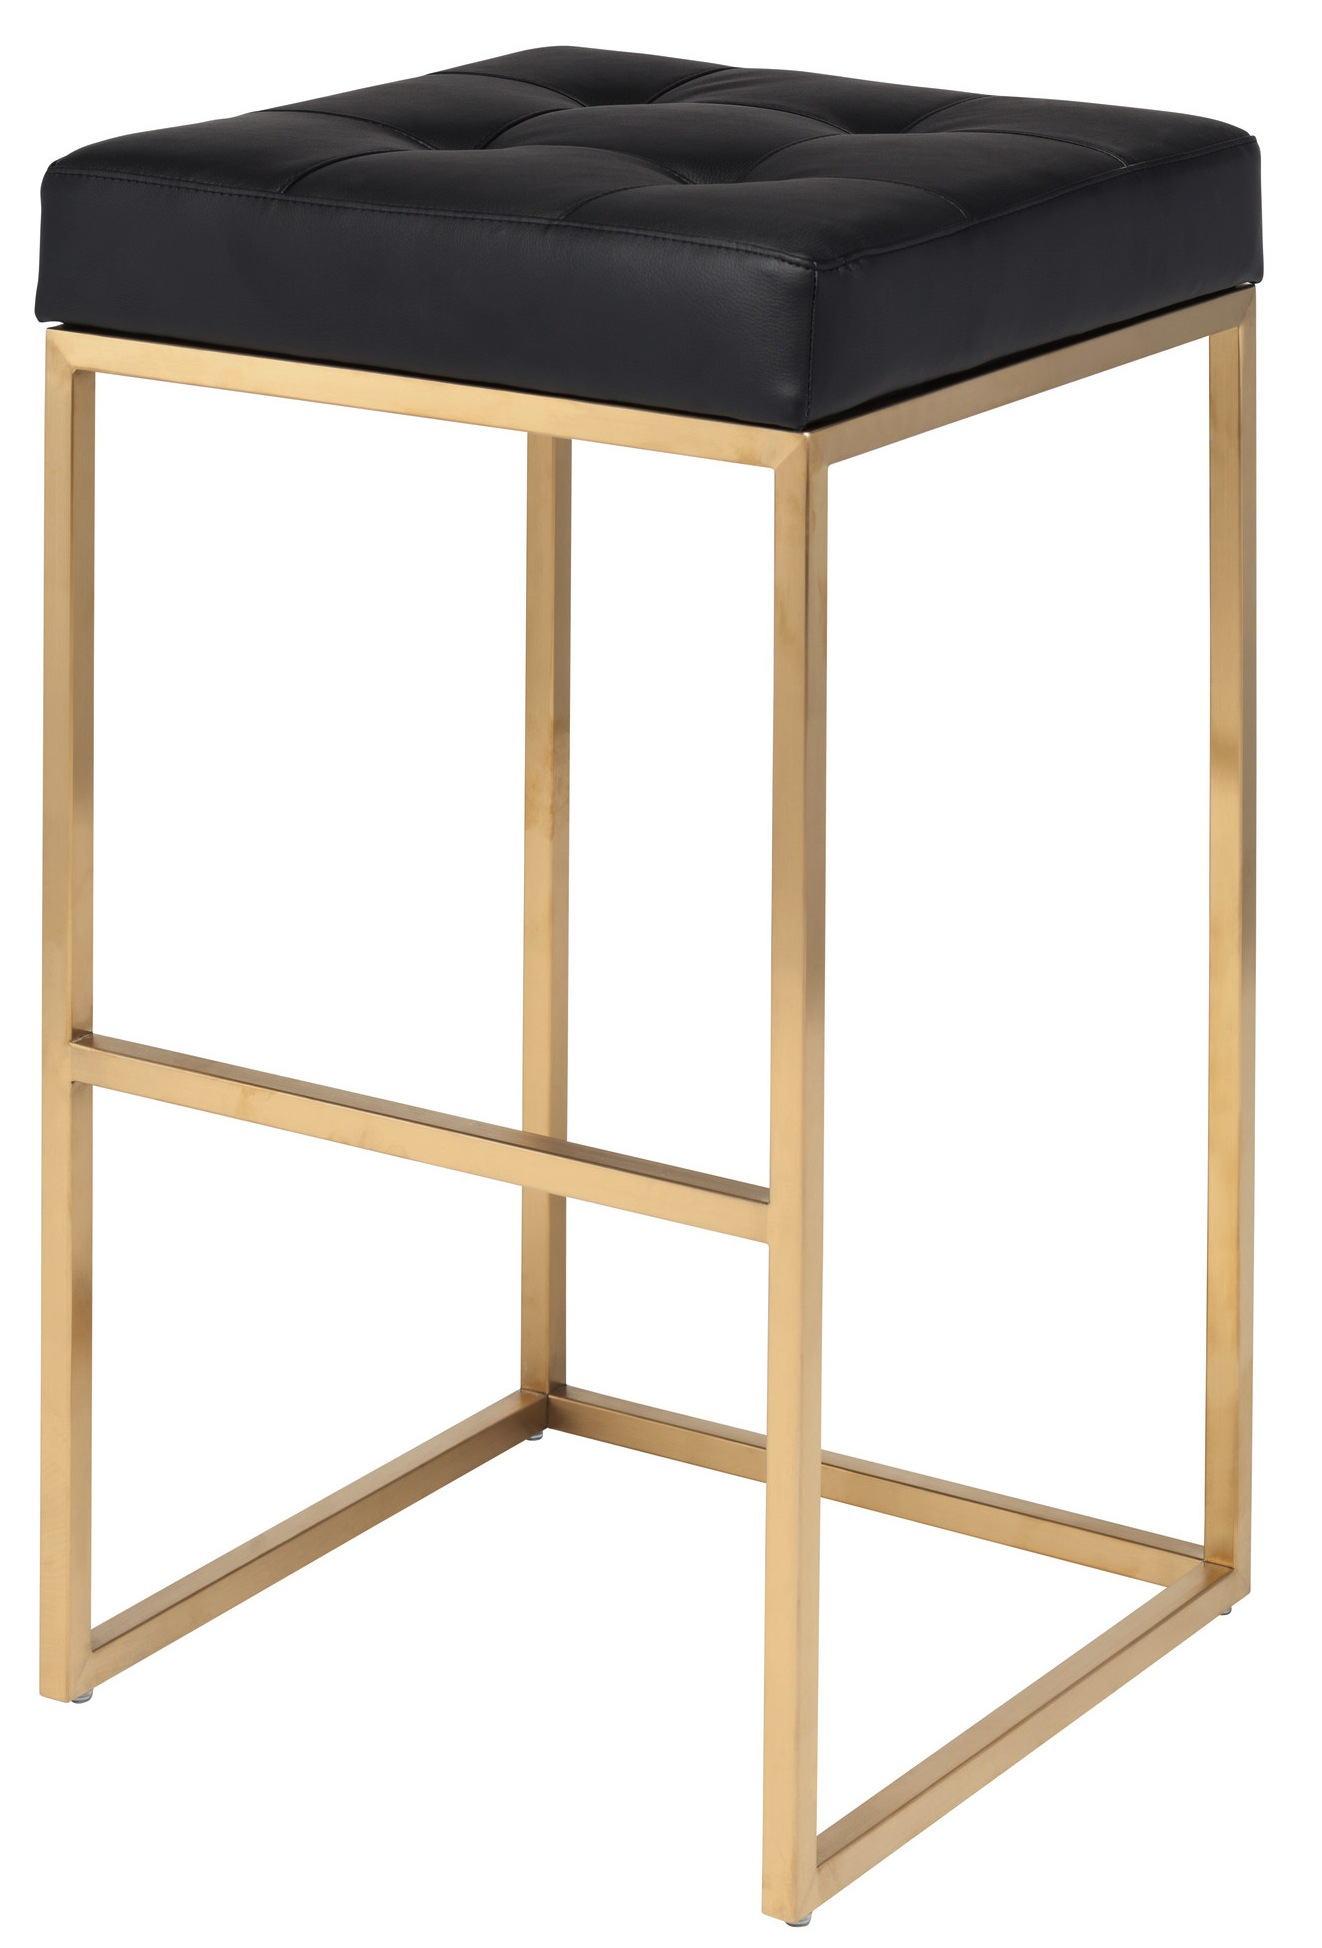 chi-bar-stool-black-with-gold-finish.jpg